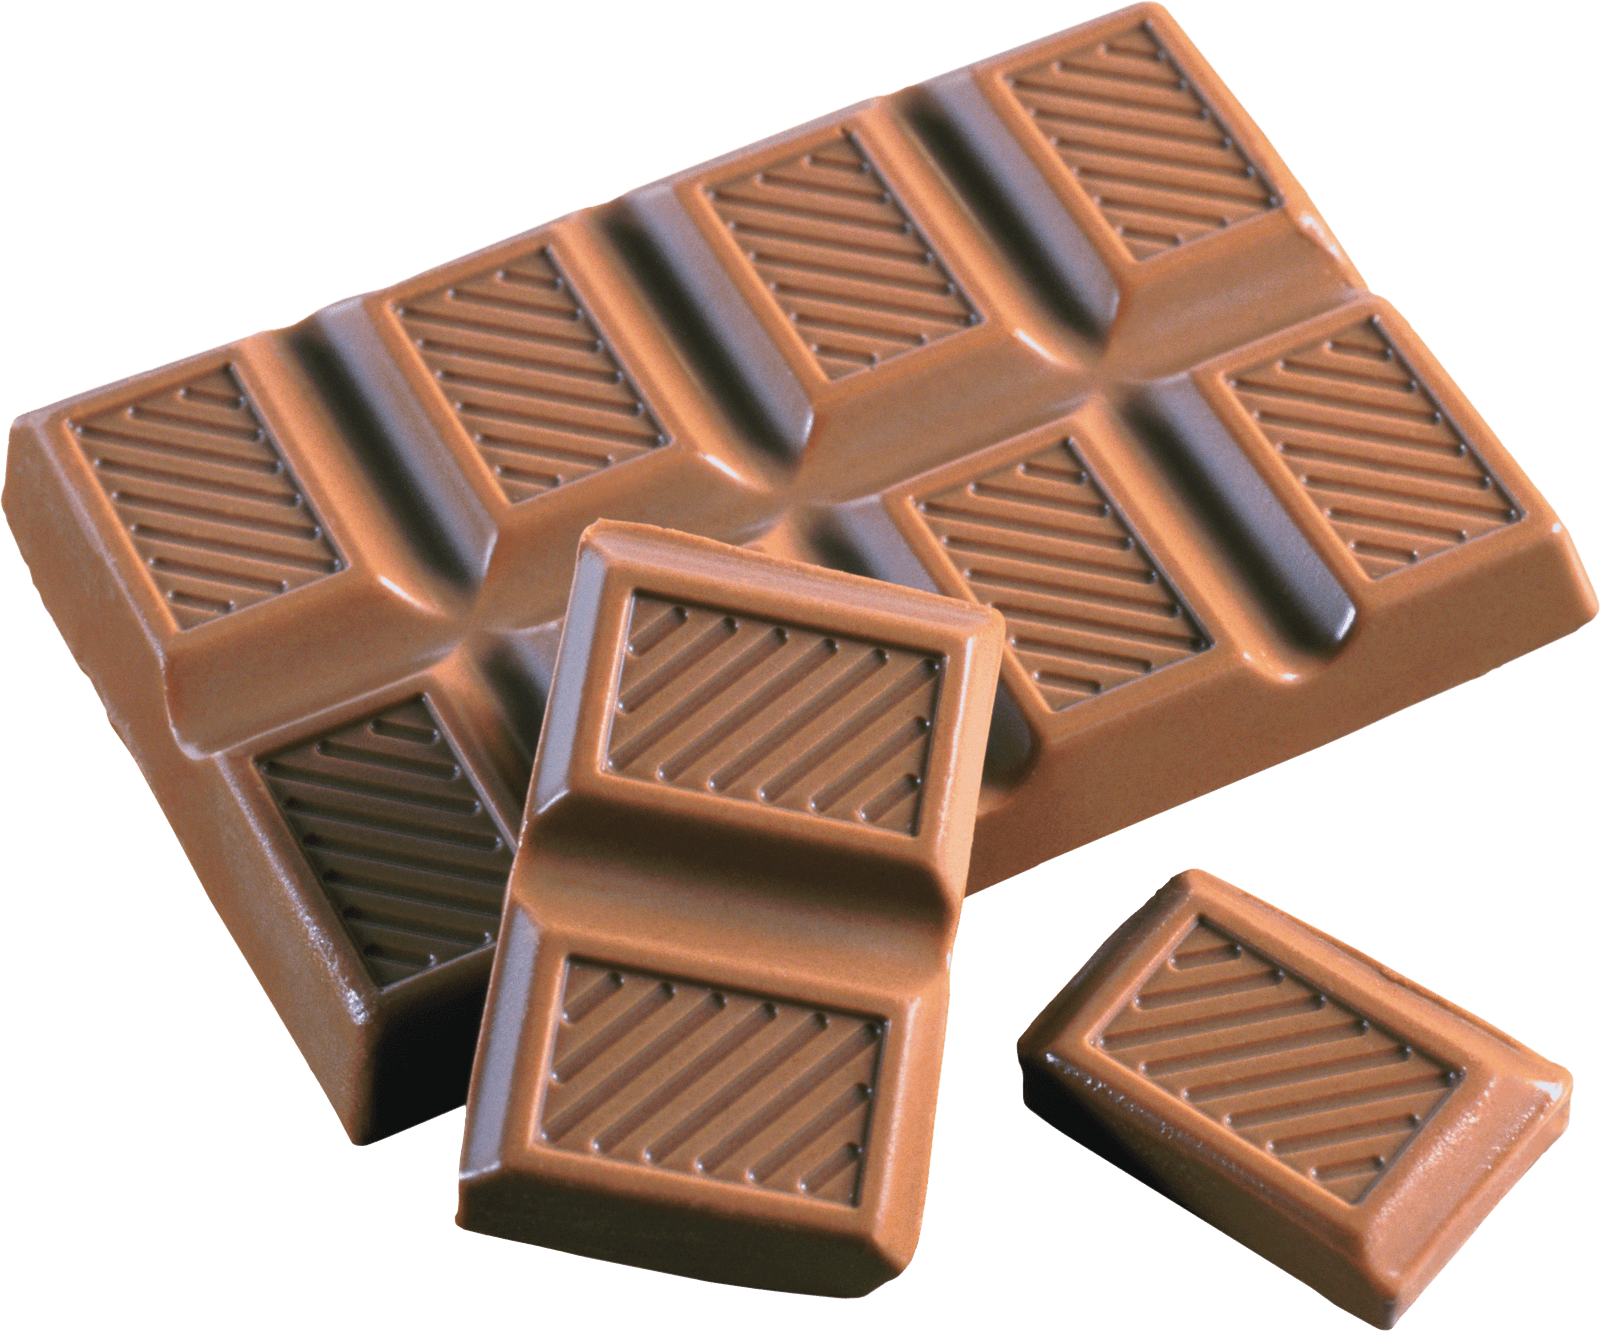 Chunks tablet transparent png. Chocolate clipart clear background